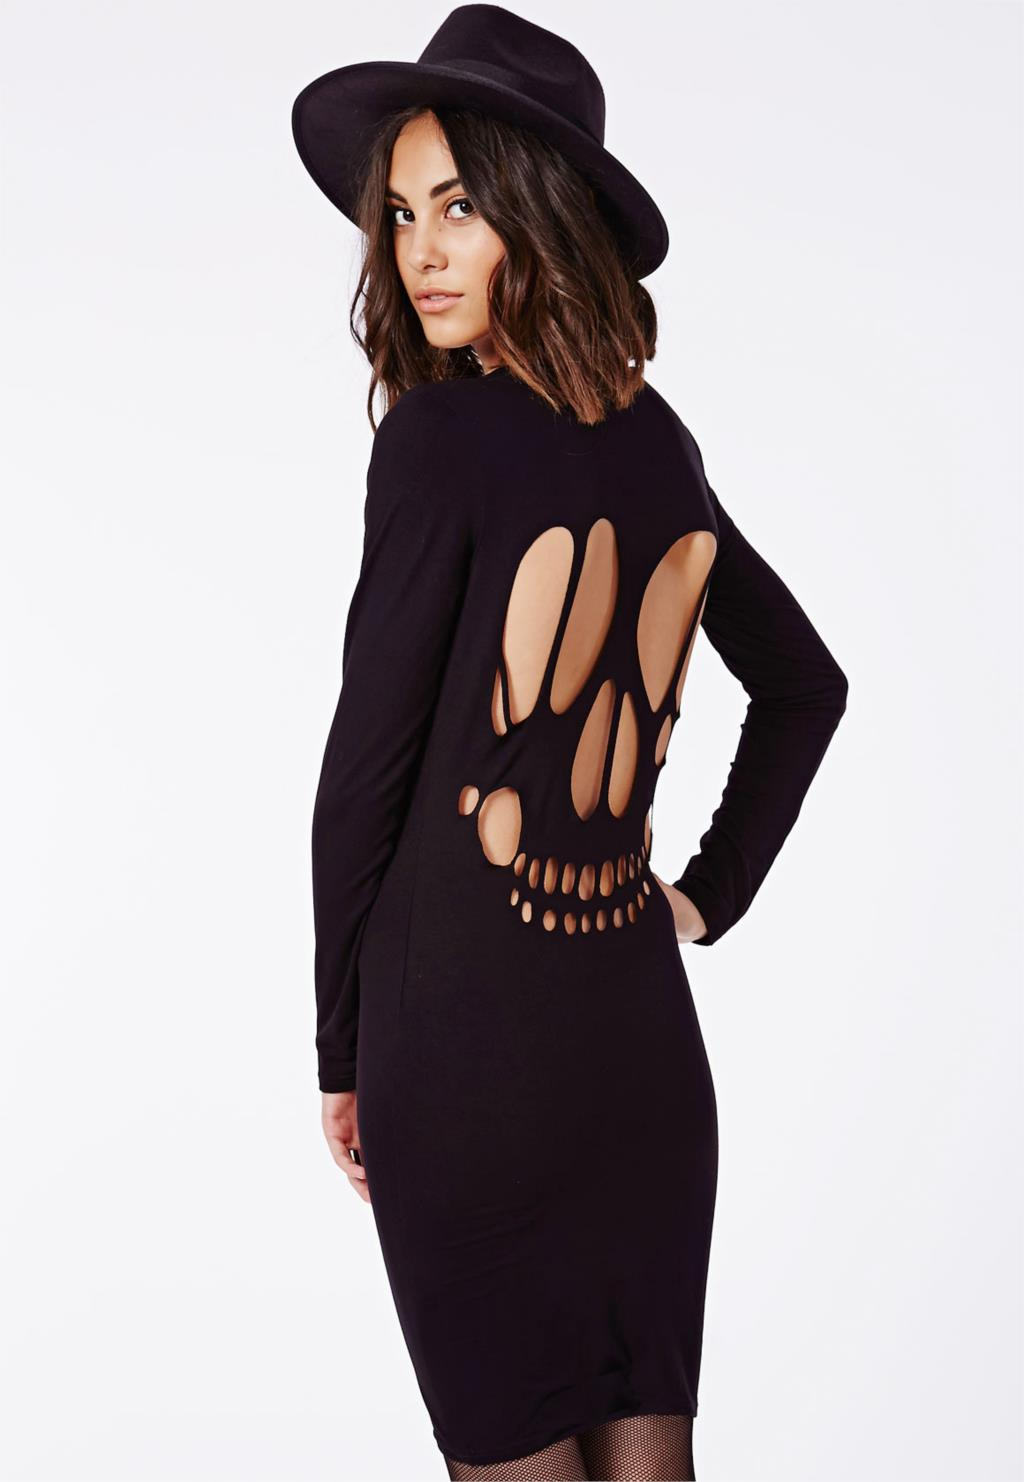 Women Dress Dresses With Long Sleeves Autumn Plus Size Hollow Out Pencil Bodycon Dress With Skull Rock Club dress(China (Mainland))